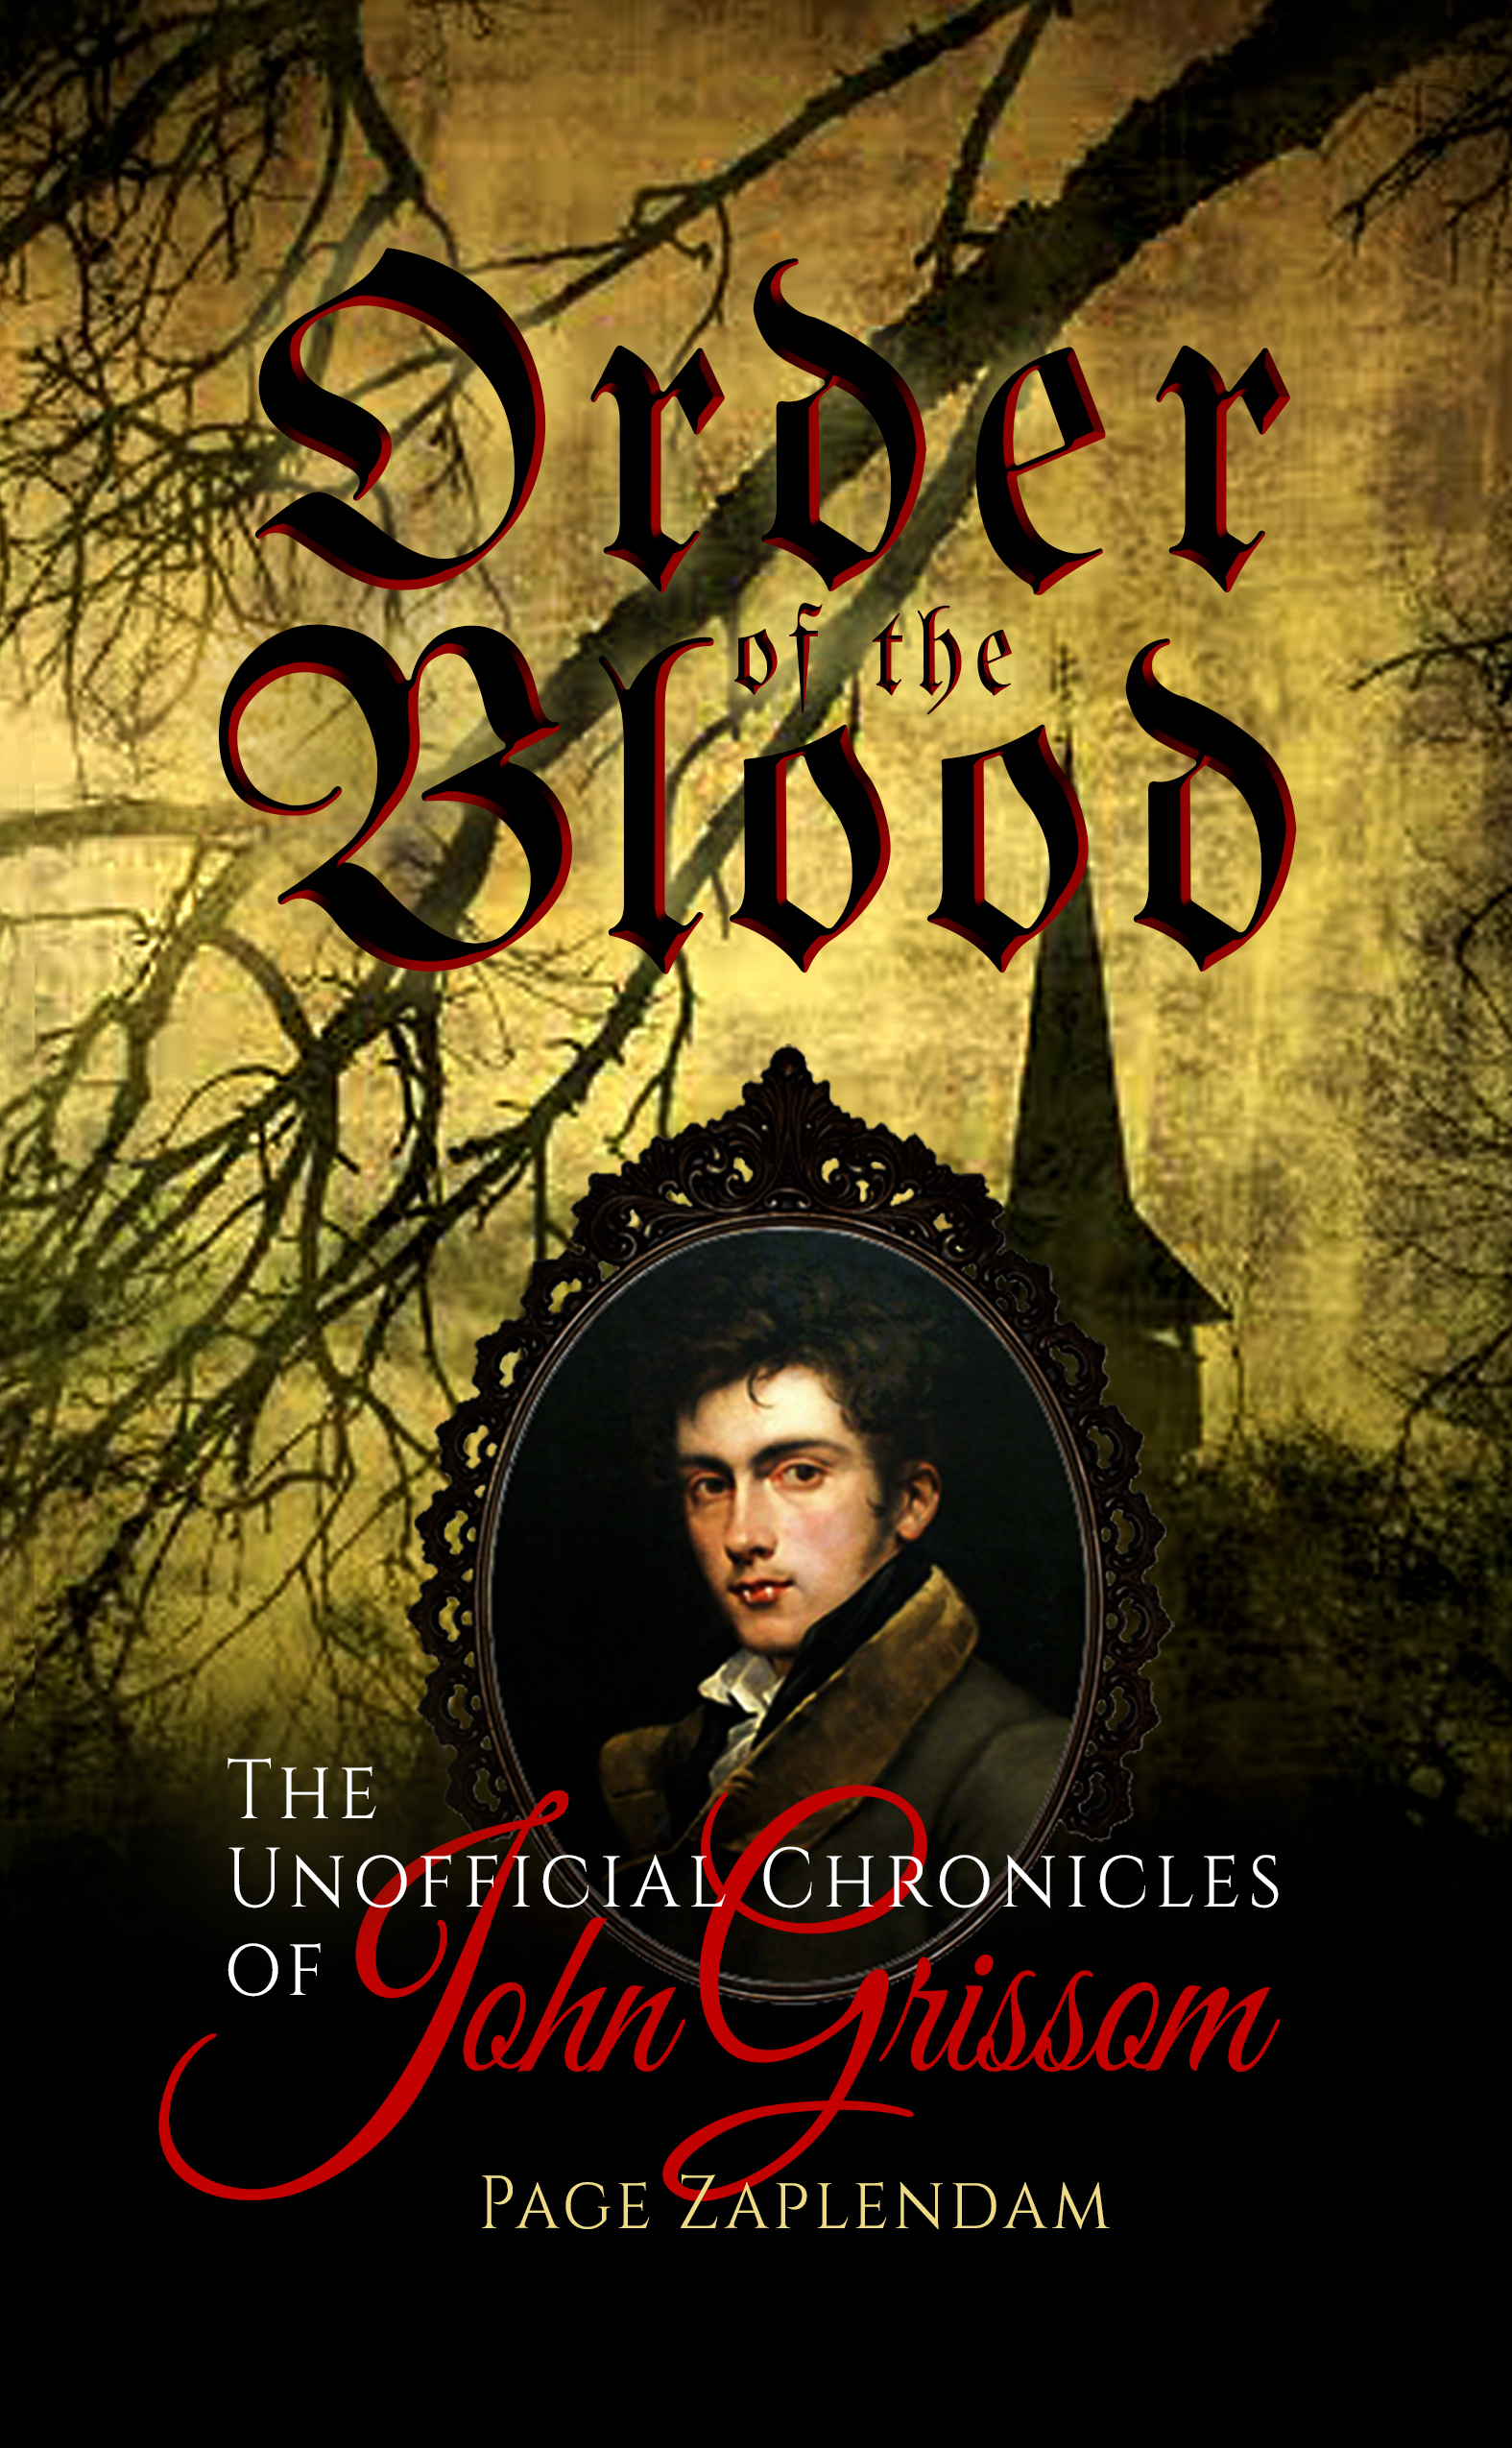 Order of the Blood: The Unofficial Chronicles of John Grissom  by  Page Zaplendam